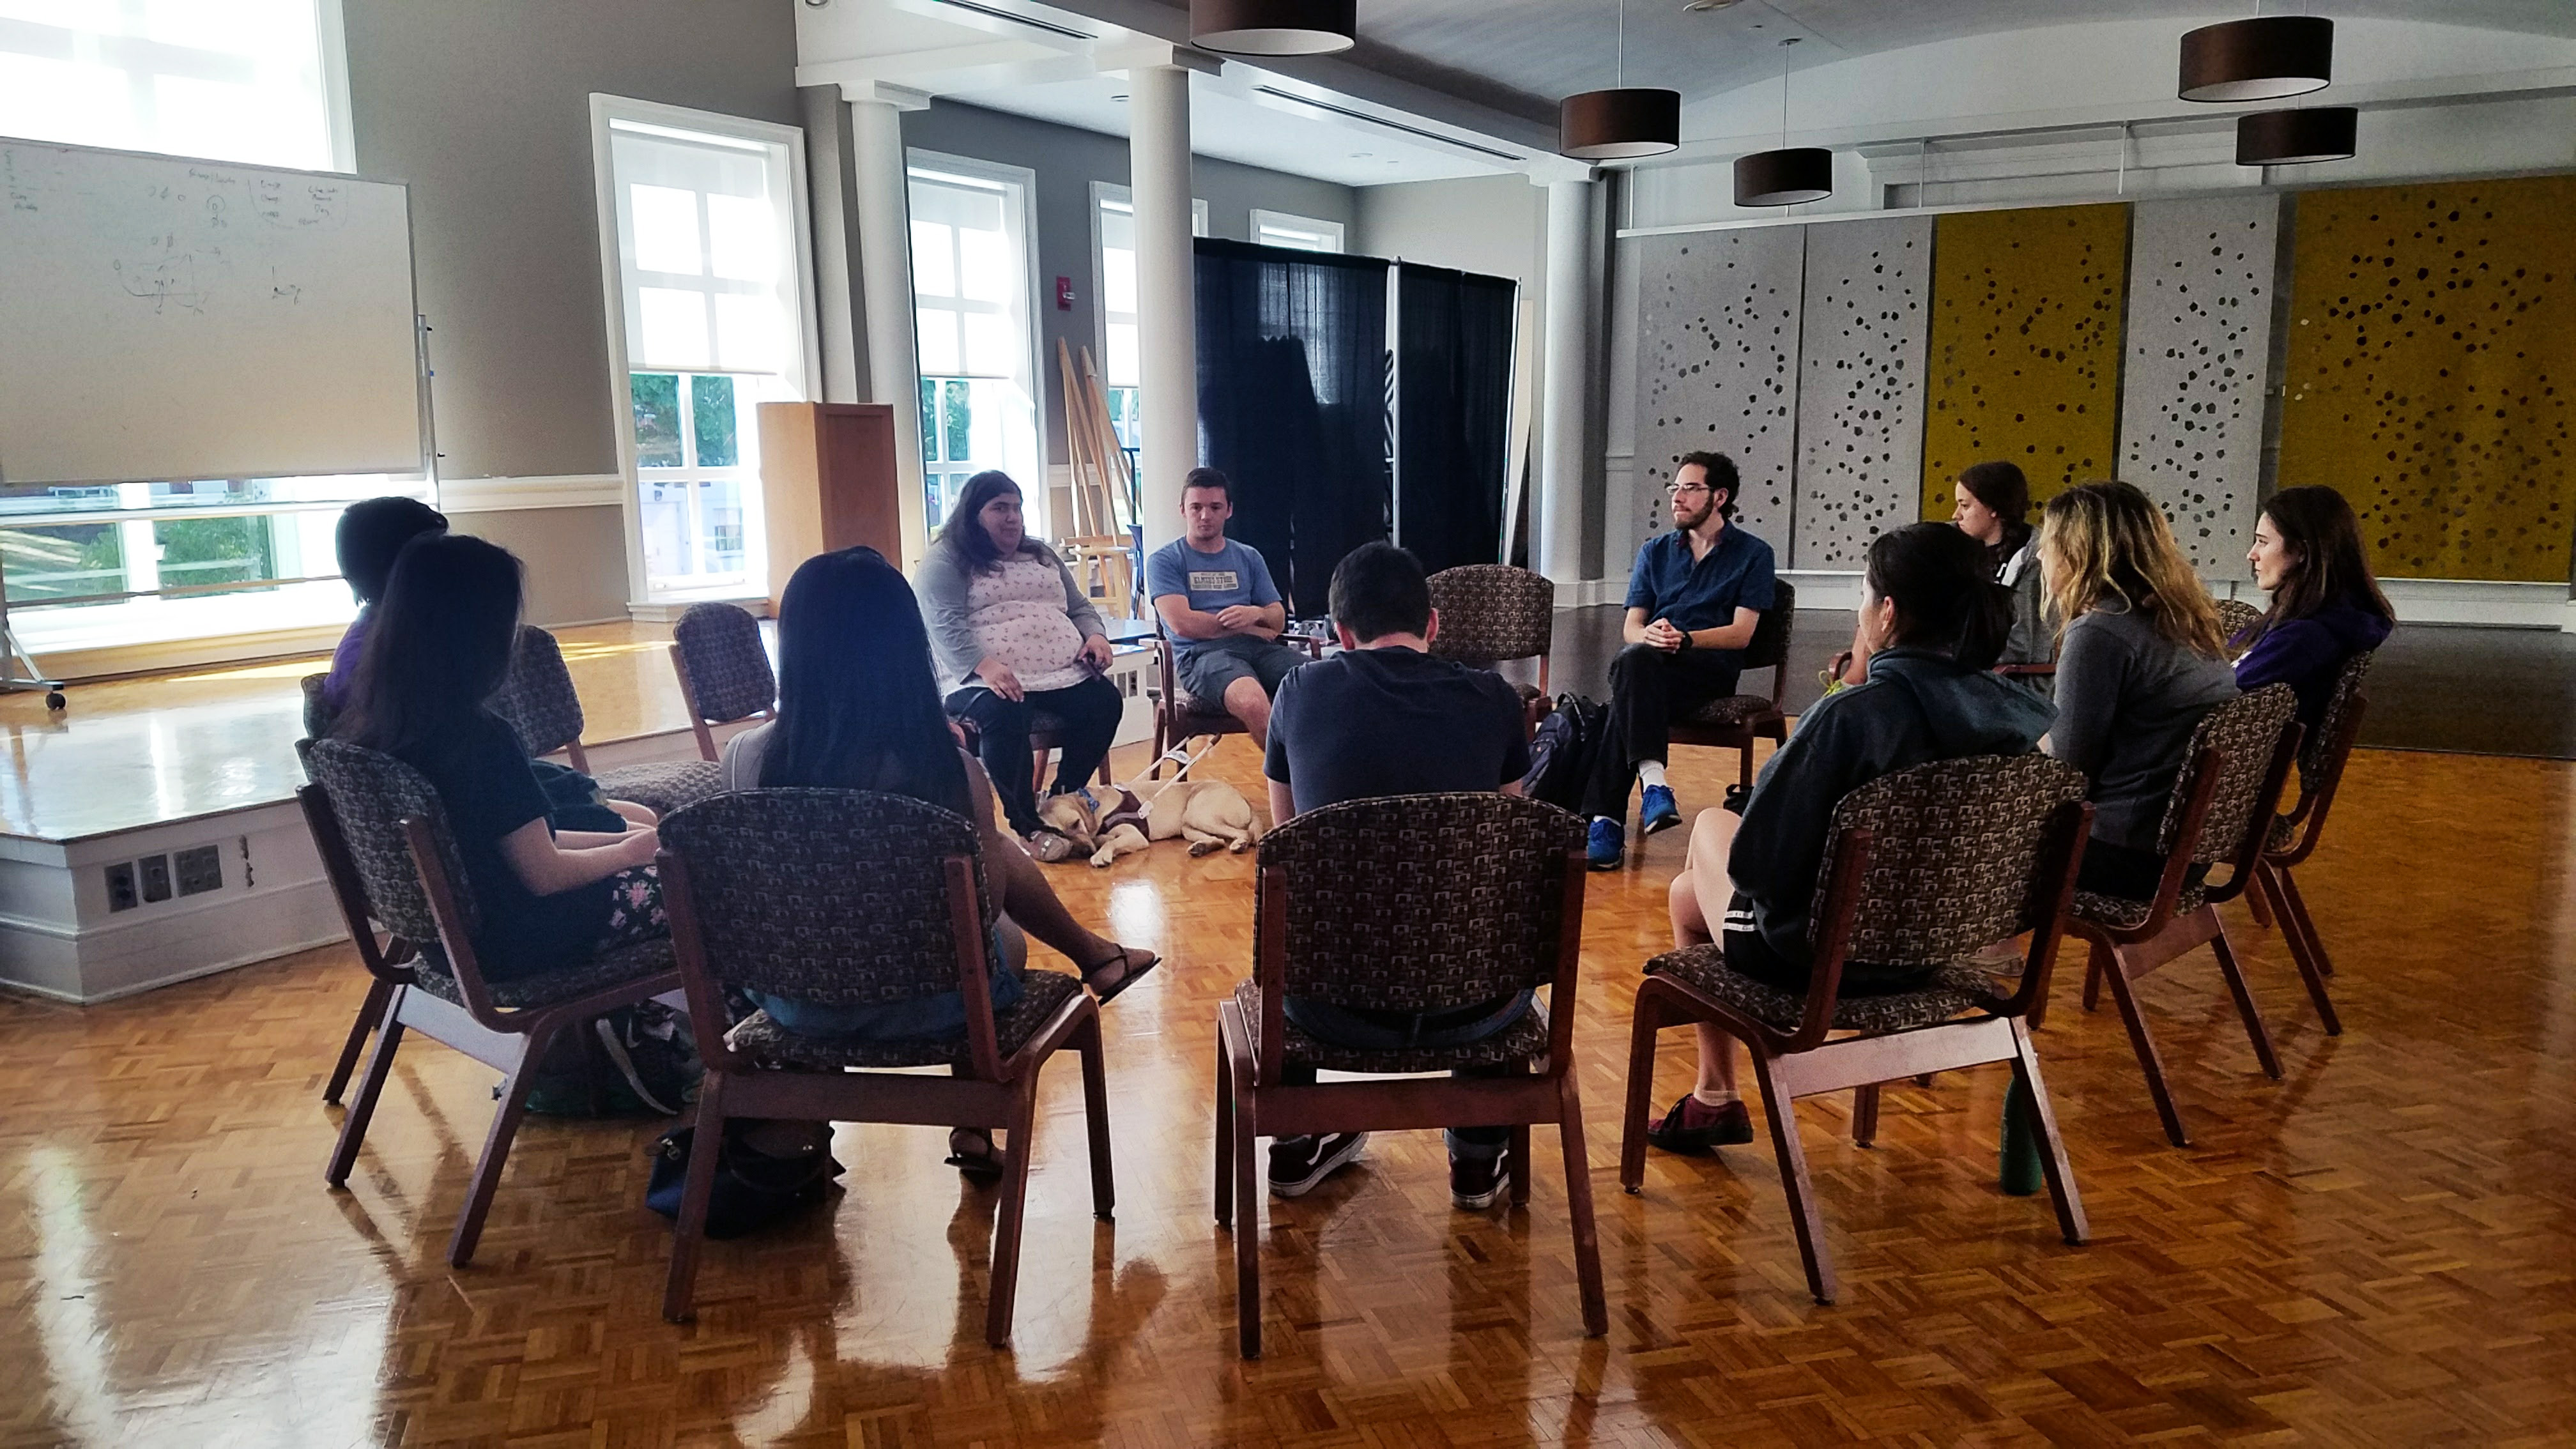 Eleven students, including forum organizers Annika Ariel '19 and Matt Walsh '19, gathered in a circle in Friedmann Room on Friday, Sept. 22, to discuss issues of accessibility on campus.